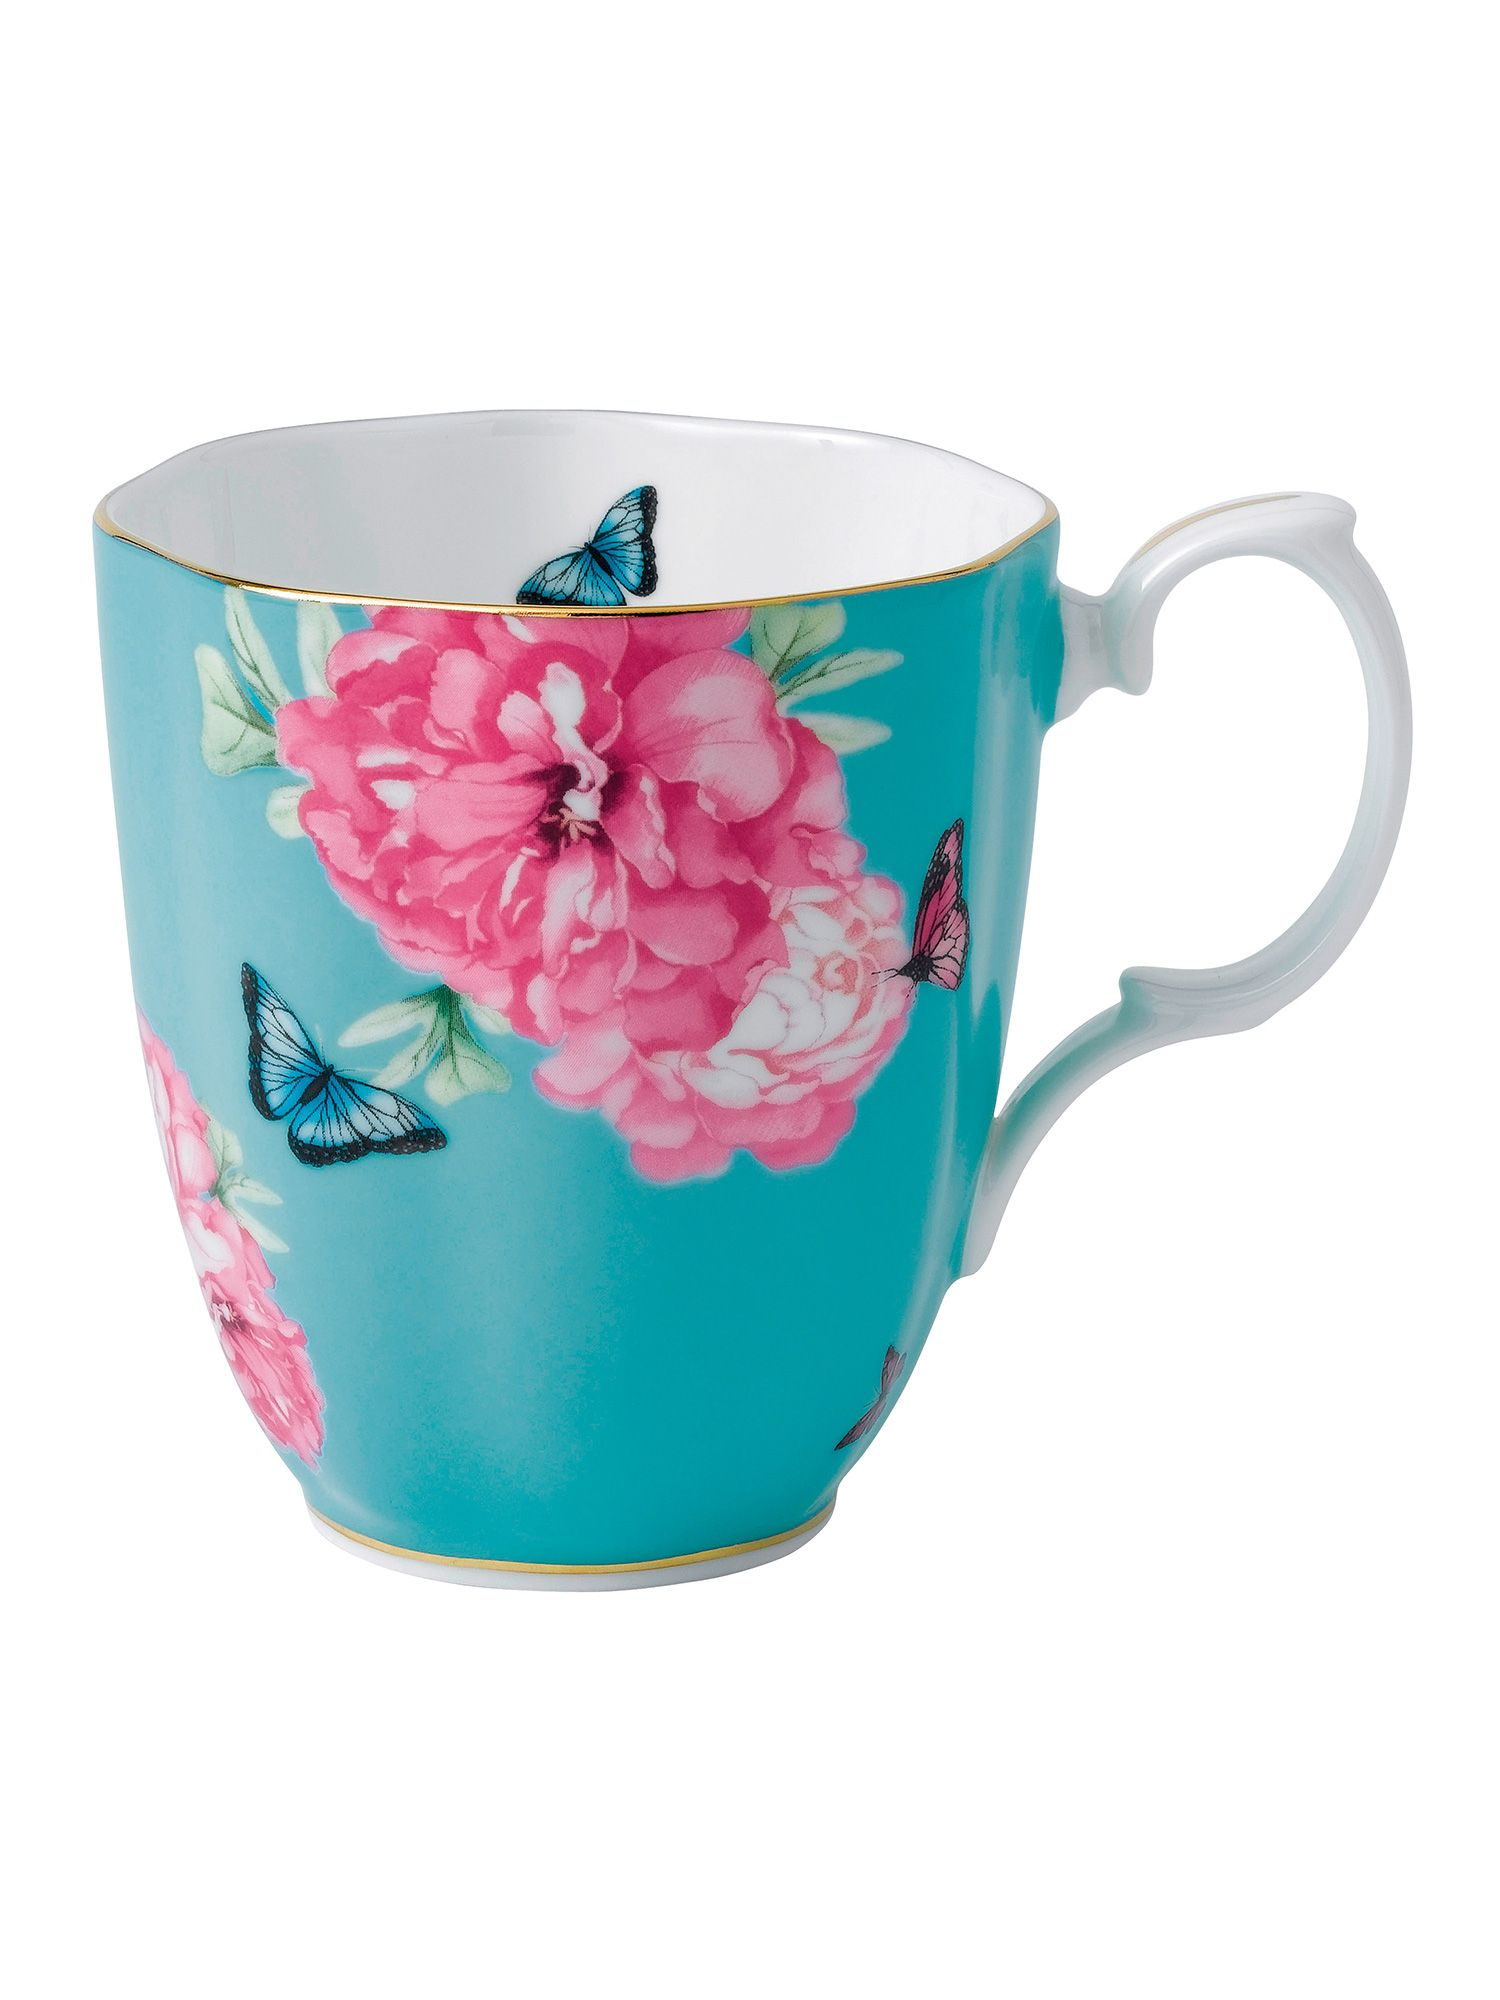 Miranda kerr friendship mug blue 0.4l